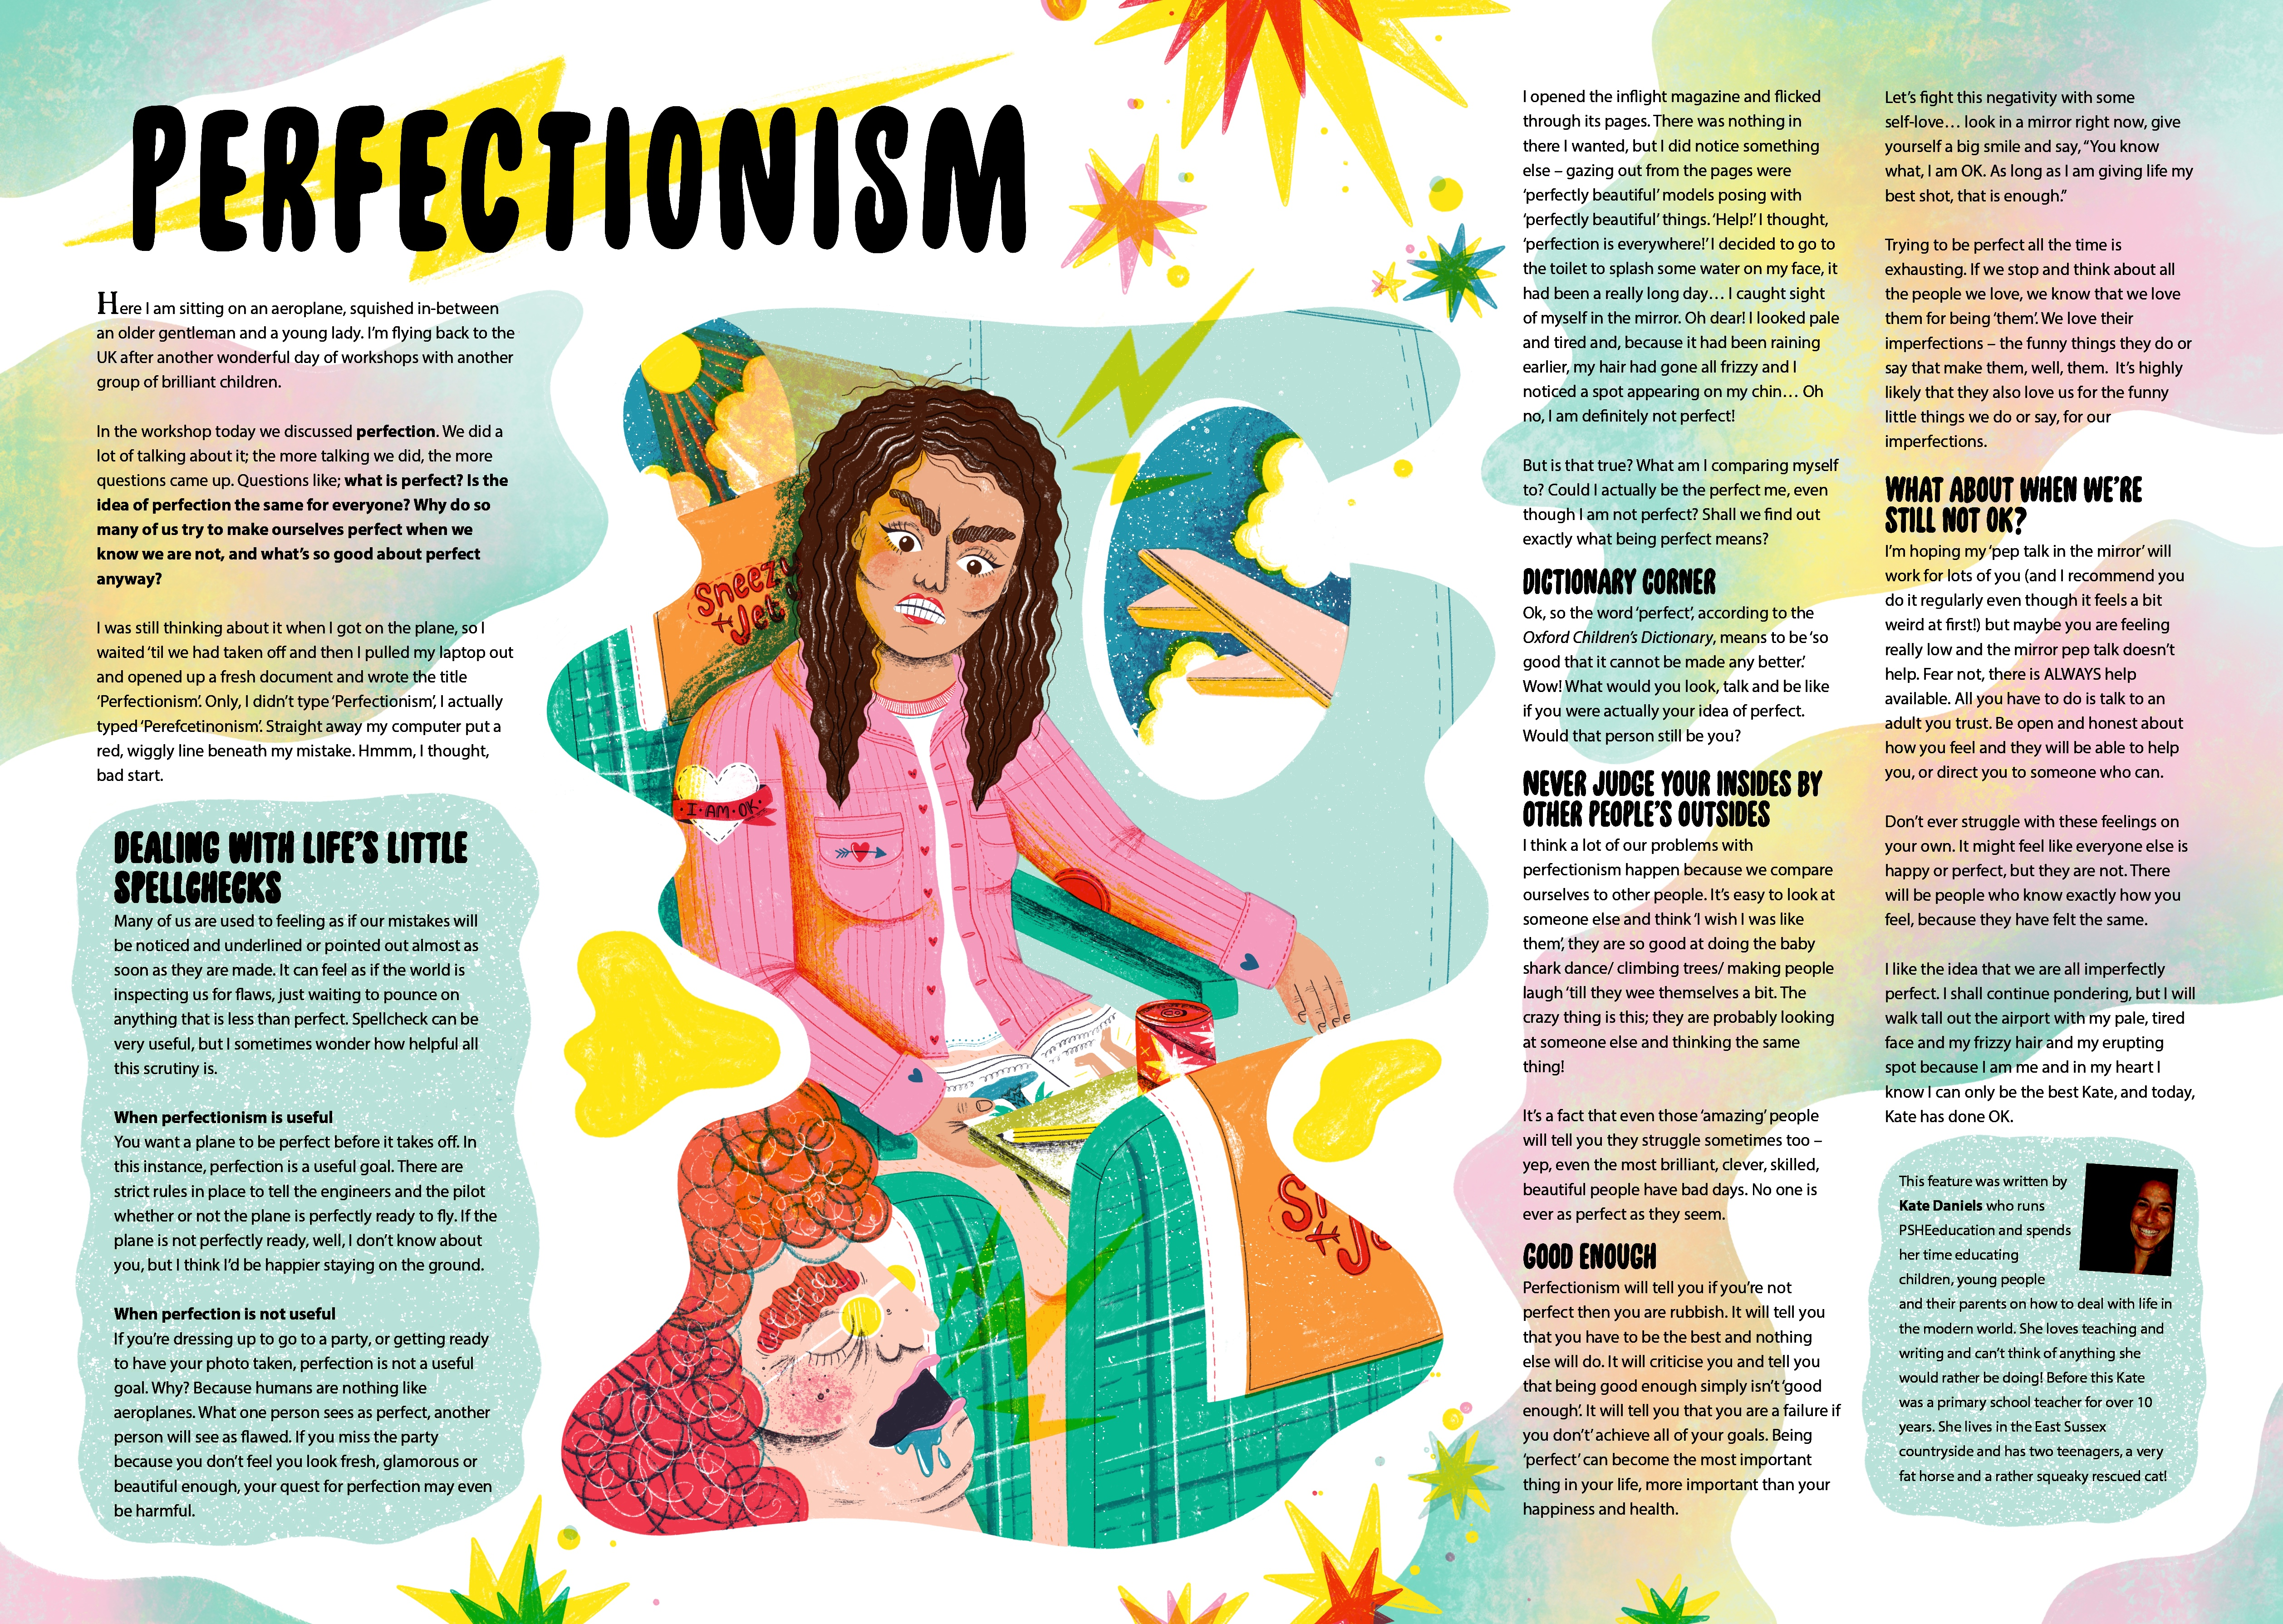 Perfectionism spread.